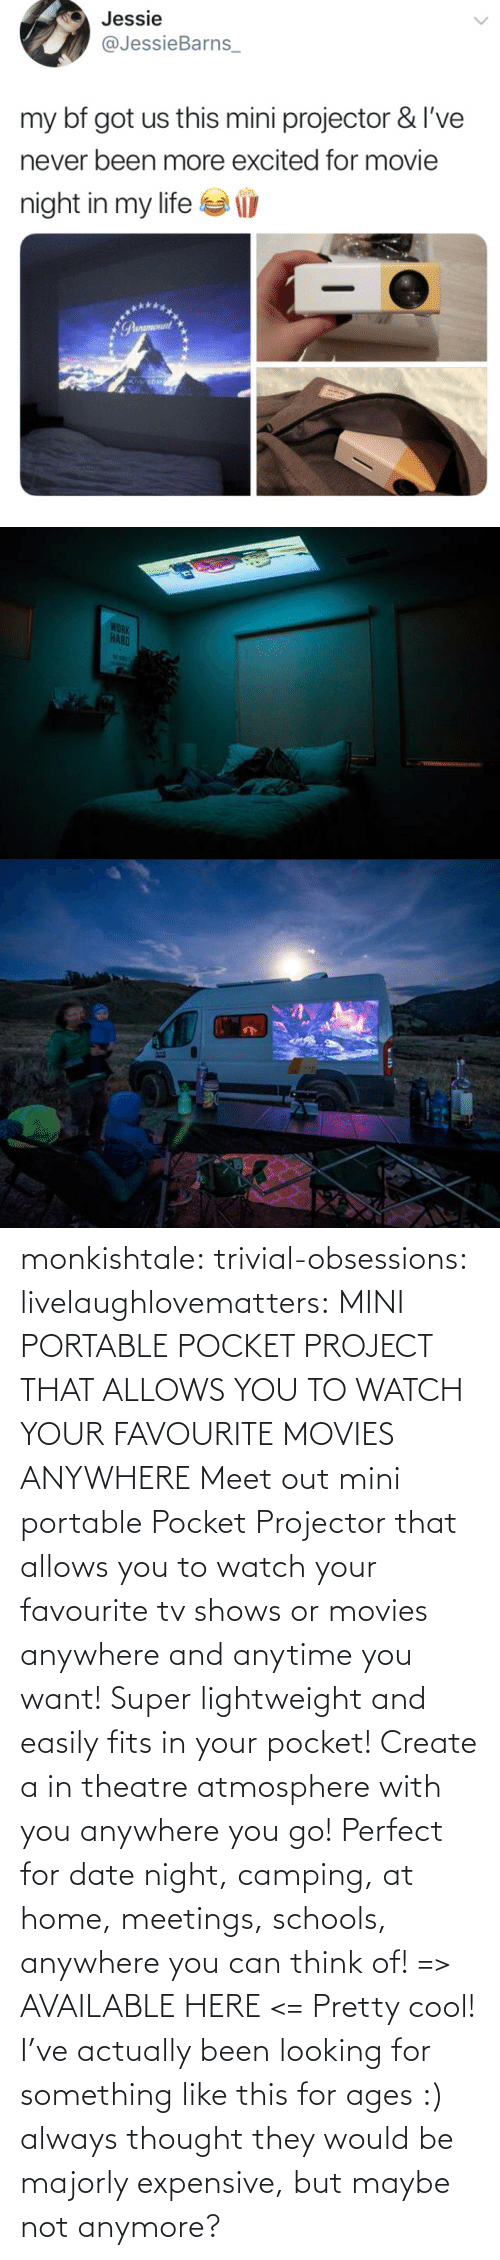 Date: monkishtale: trivial-obsessions:   livelaughlovematters:   MINI PORTABLE POCKET PROJECT THAT ALLOWS YOU TO WATCH YOUR FAVOURITE MOVIES ANYWHERE Meet out mini portable Pocket Projector that allows you to watch your favourite tv shows or movies anywhere and anytime you want! Super lightweight and easily fits in your pocket! Create a in theatre atmosphere with you anywhere you go! Perfect for date night, camping, at home, meetings, schools, anywhere you can think of! => AVAILABLE HERE <=    Pretty cool!    I've actually been looking for something like this for ages :) always thought they would be majorly expensive, but maybe not anymore?